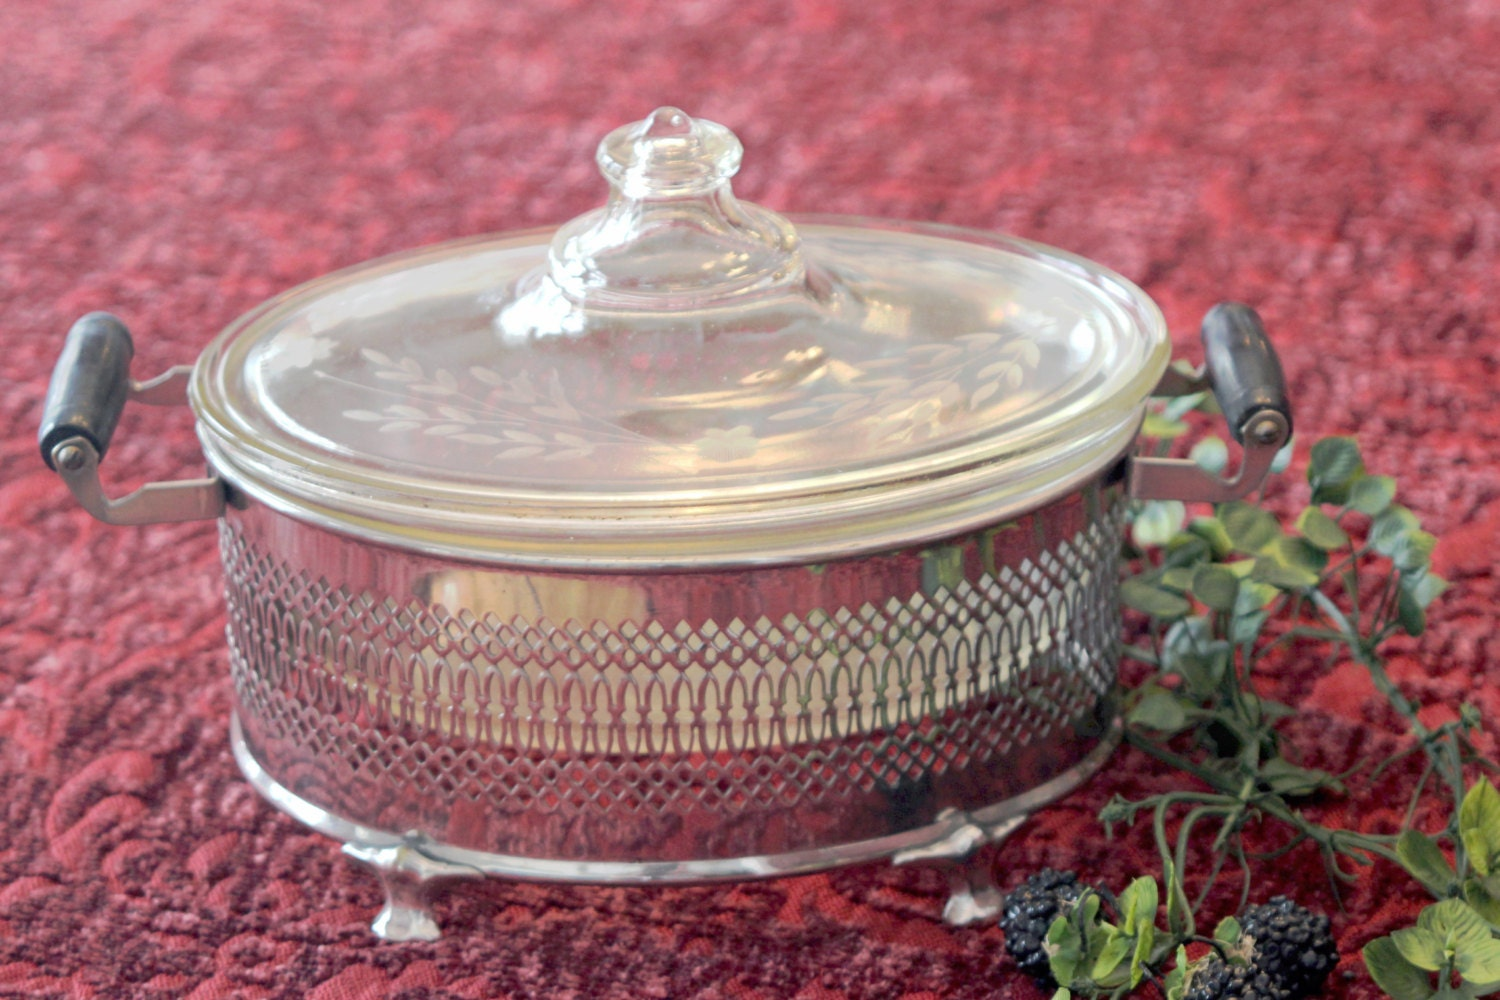 Vintage Etched Pyrex Oval Casserole Dish And Lid